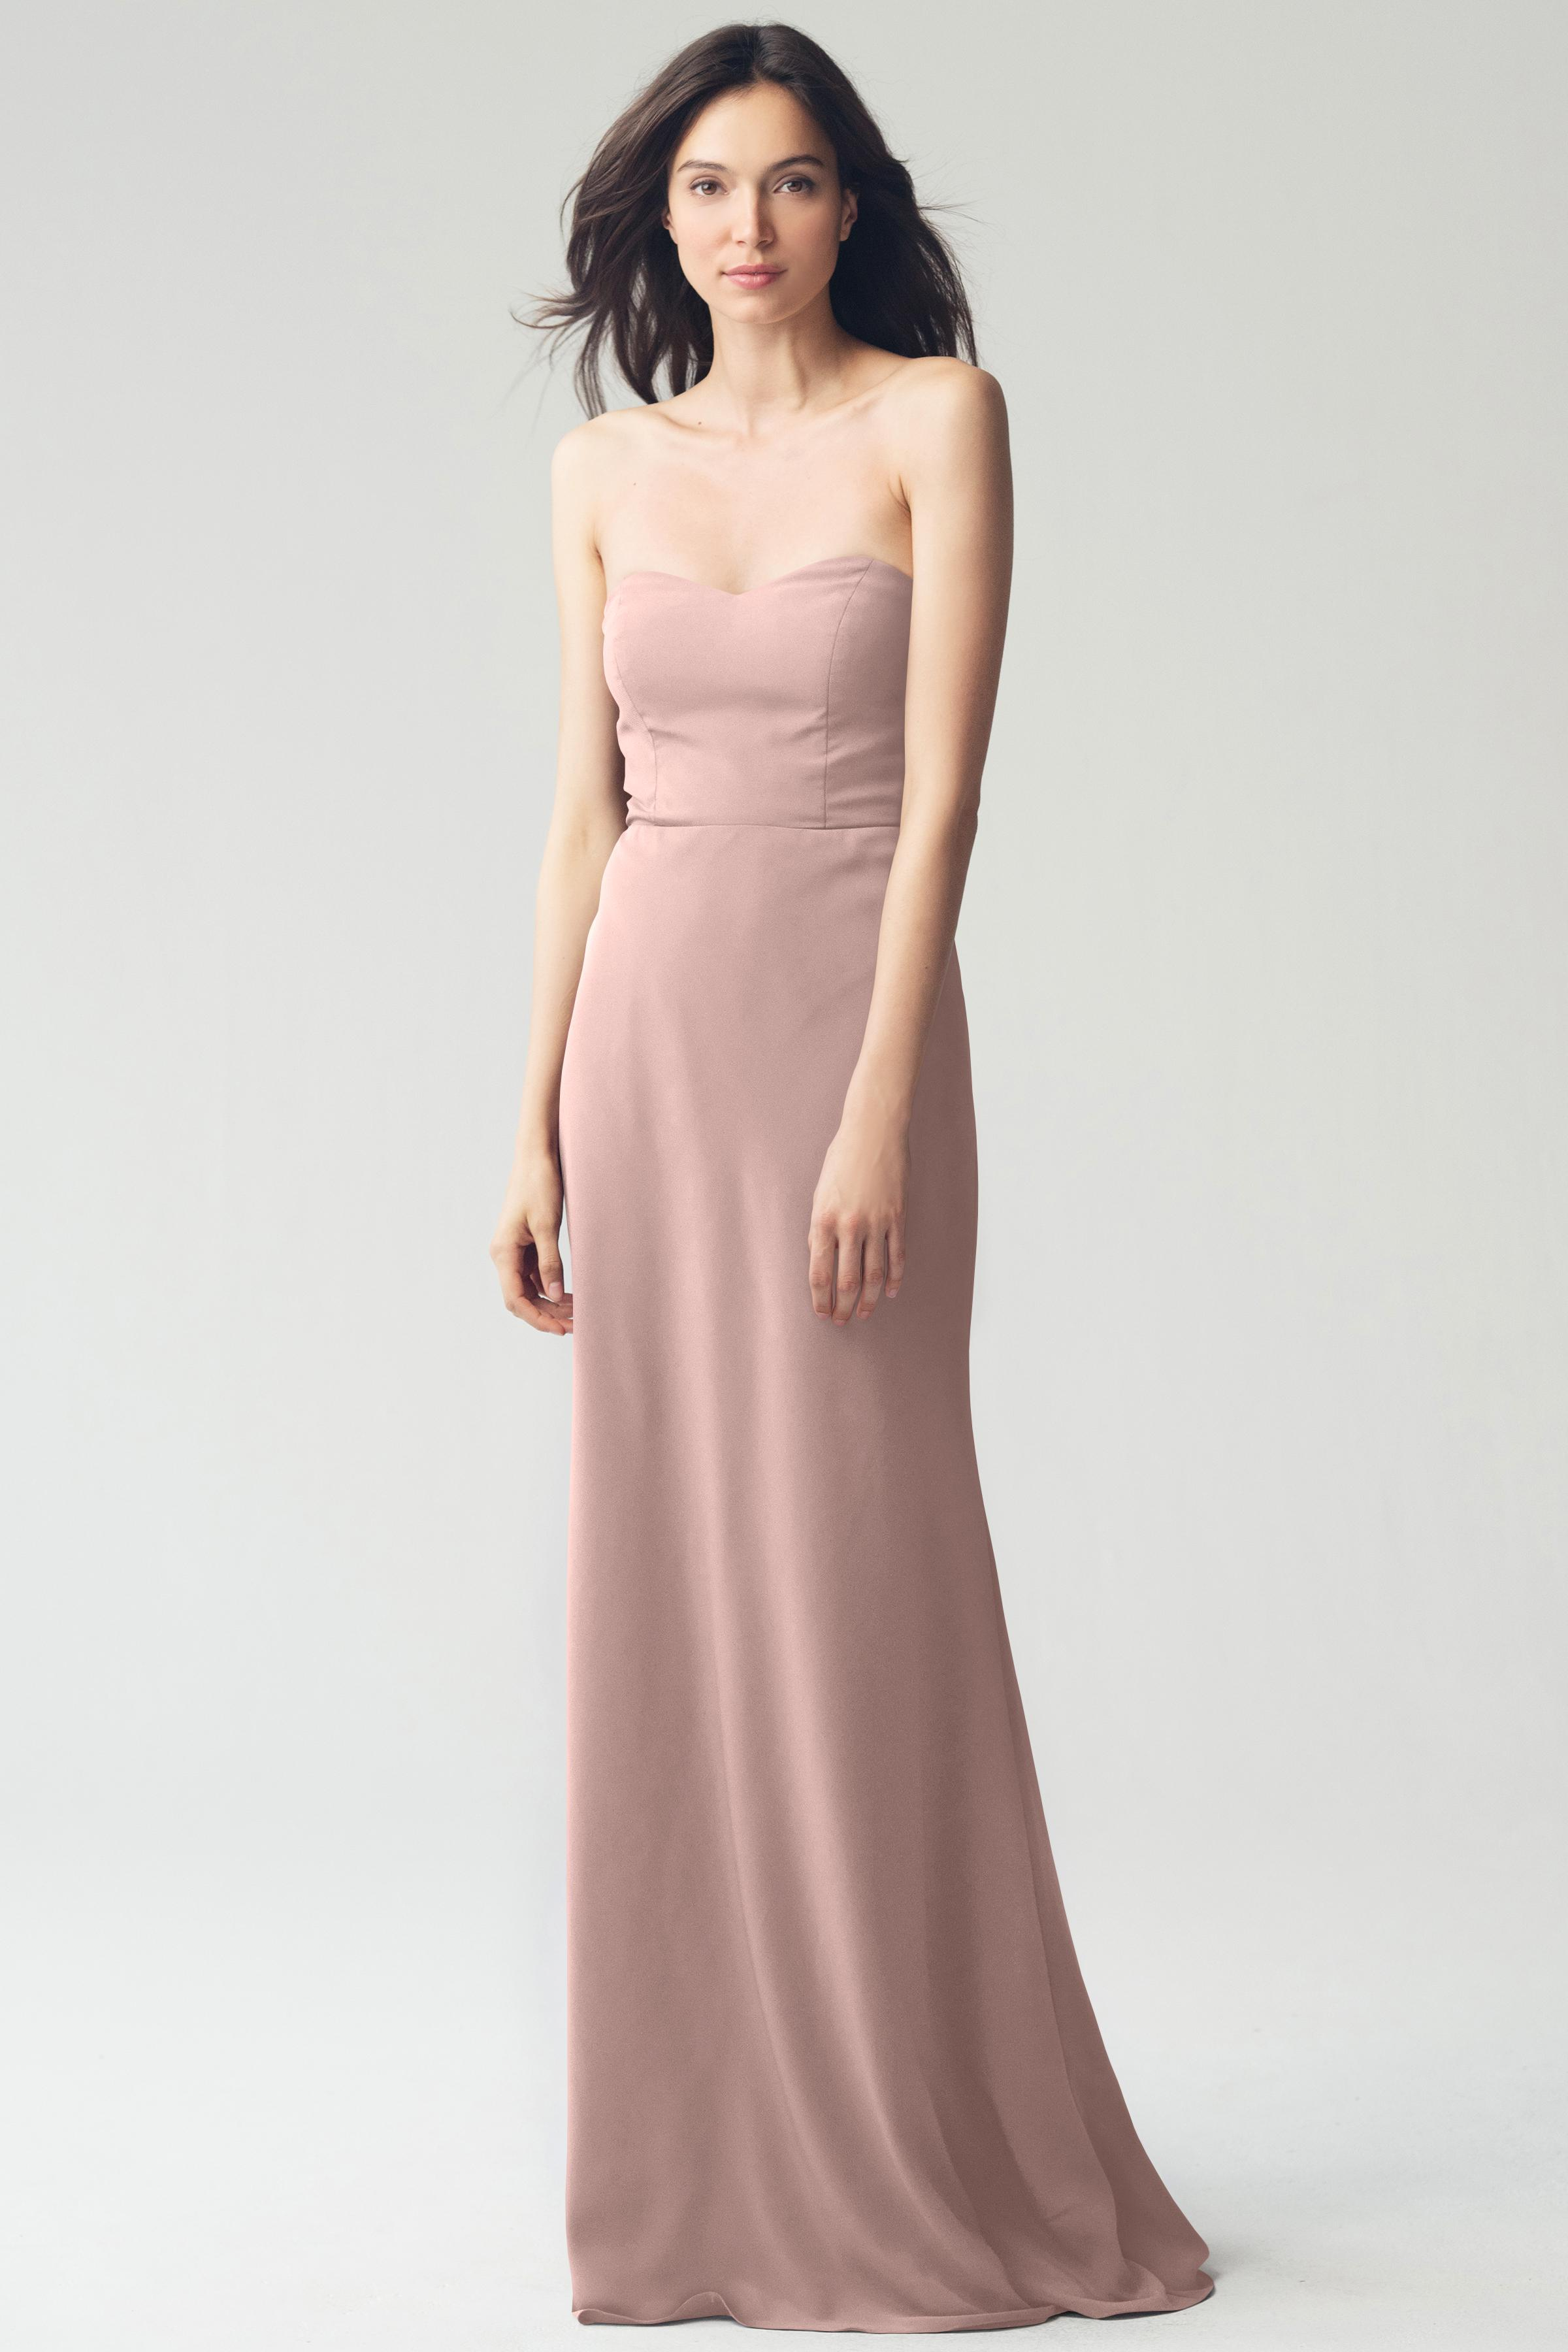 Kylie Bridesmaids Dress by Jenny Yoo - Whipped Apricot